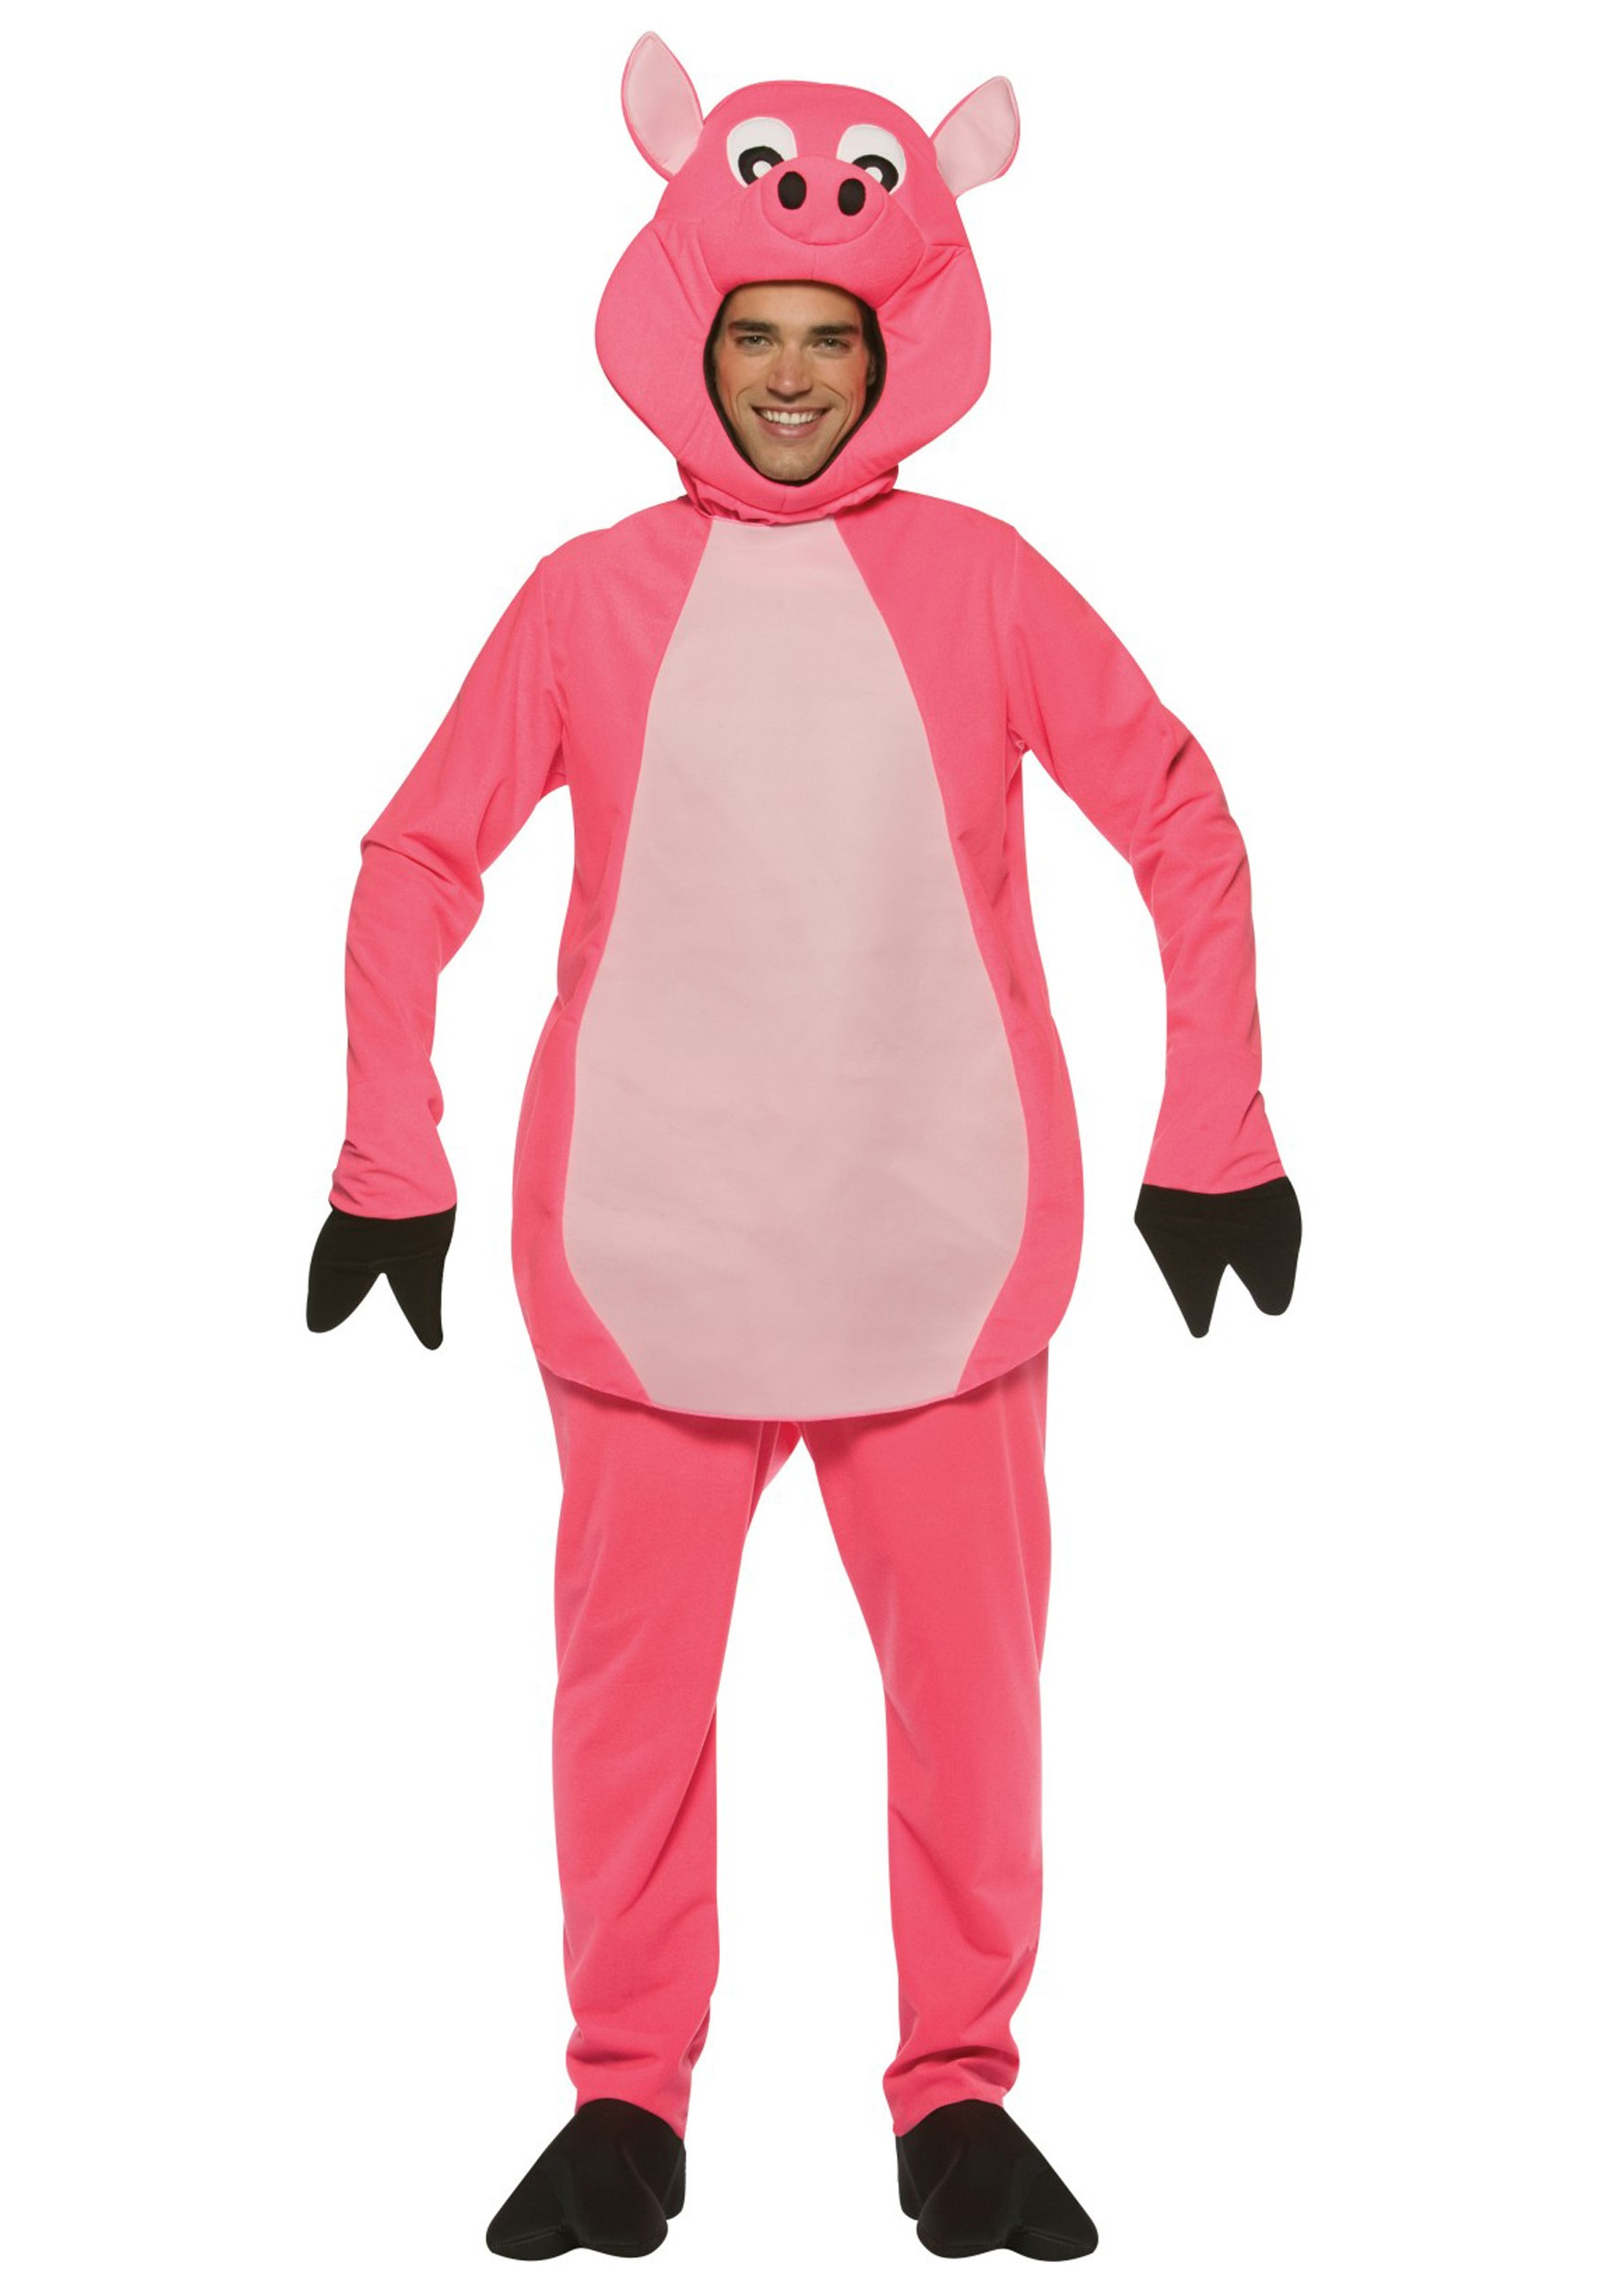 Pig costumes for adults kids halloweencostumes adult pig costume solutioingenieria Gallery